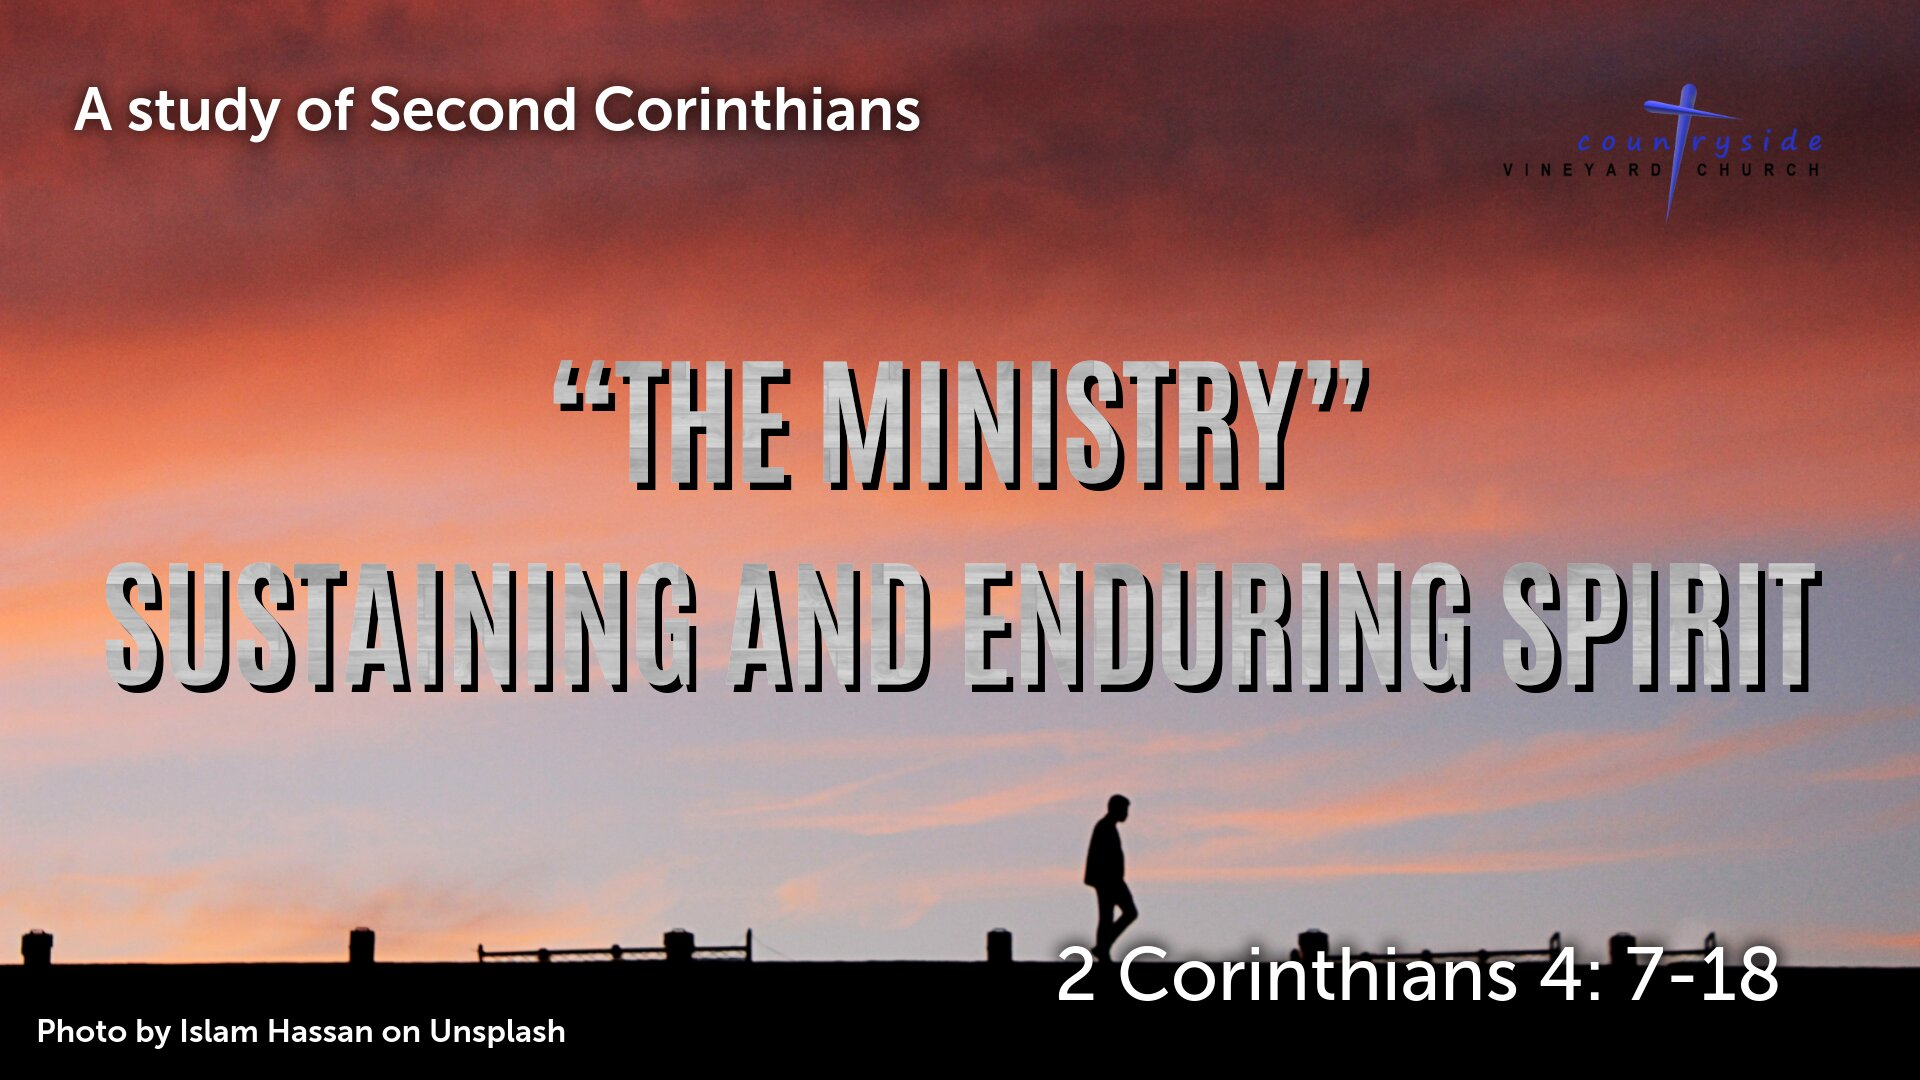 The Ministry - Sustaining and Enduring Spirit